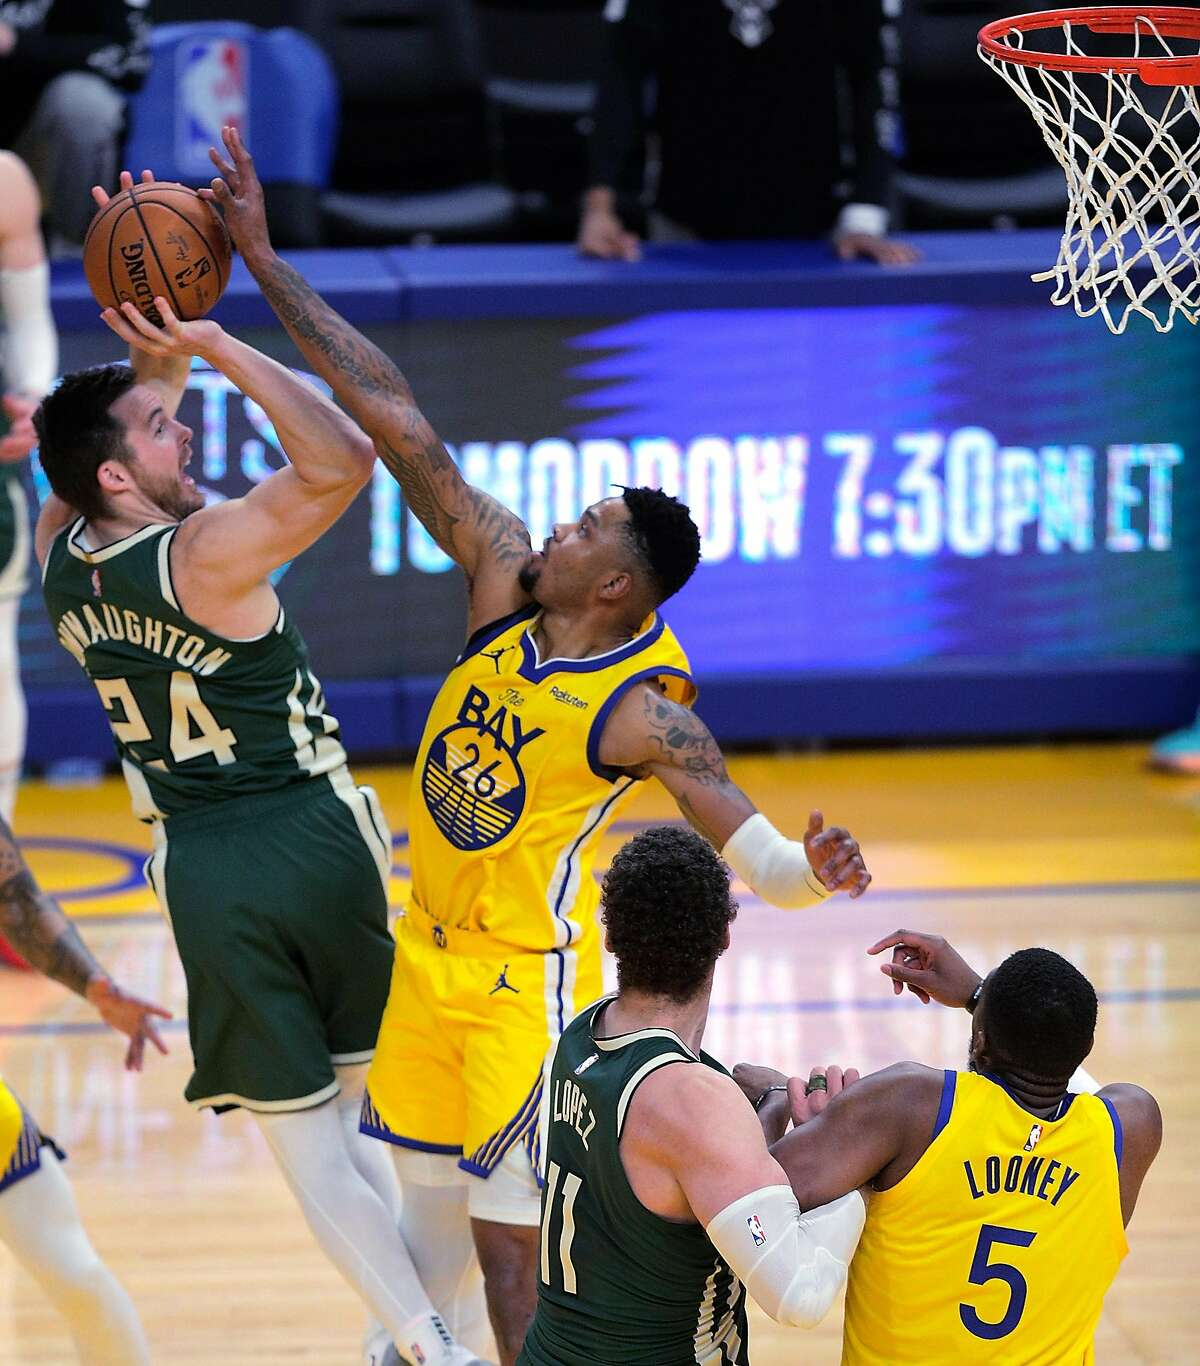 Kent Bazemore (26) blocks Pat Connaughton's (24) final shot in the second half as the Golden State Warriors defeated the Milwaukee Bucks 122-121 at Chase Center in San Francisco Calif., on Tuesday, April 6, 2021.